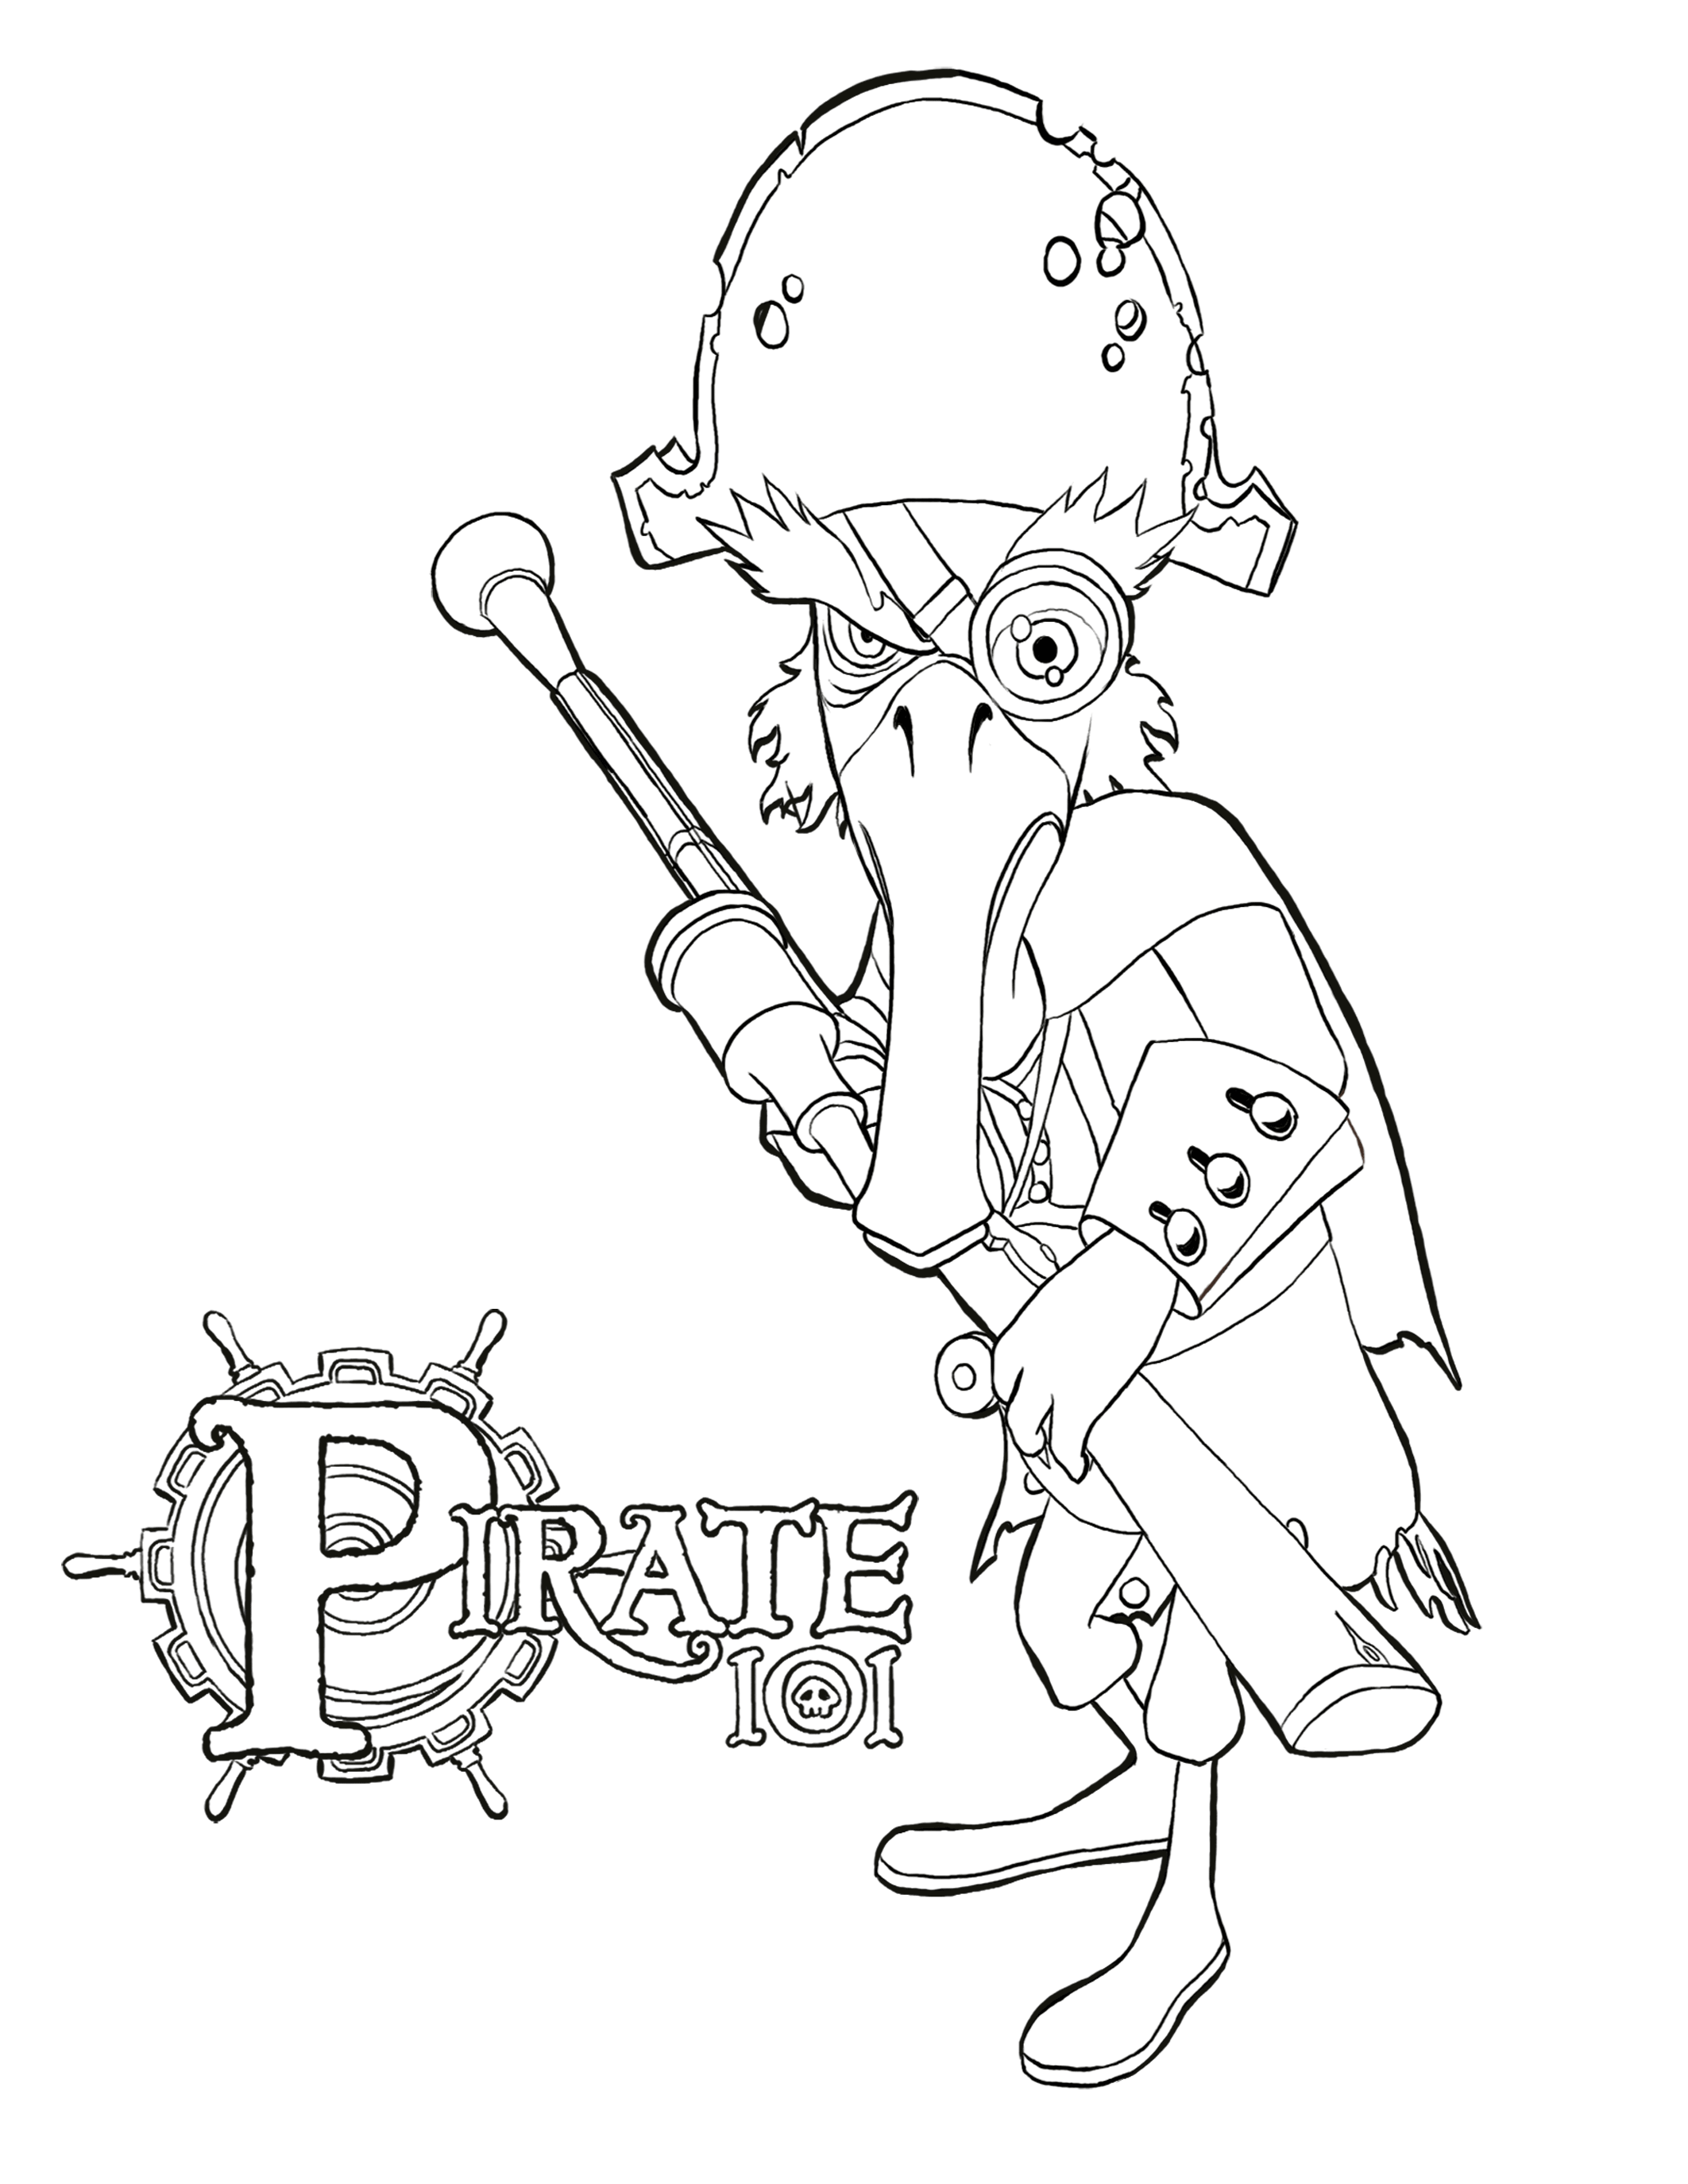 Pirate colouring pages to print - Download Ol Fish Eye Coloring Page